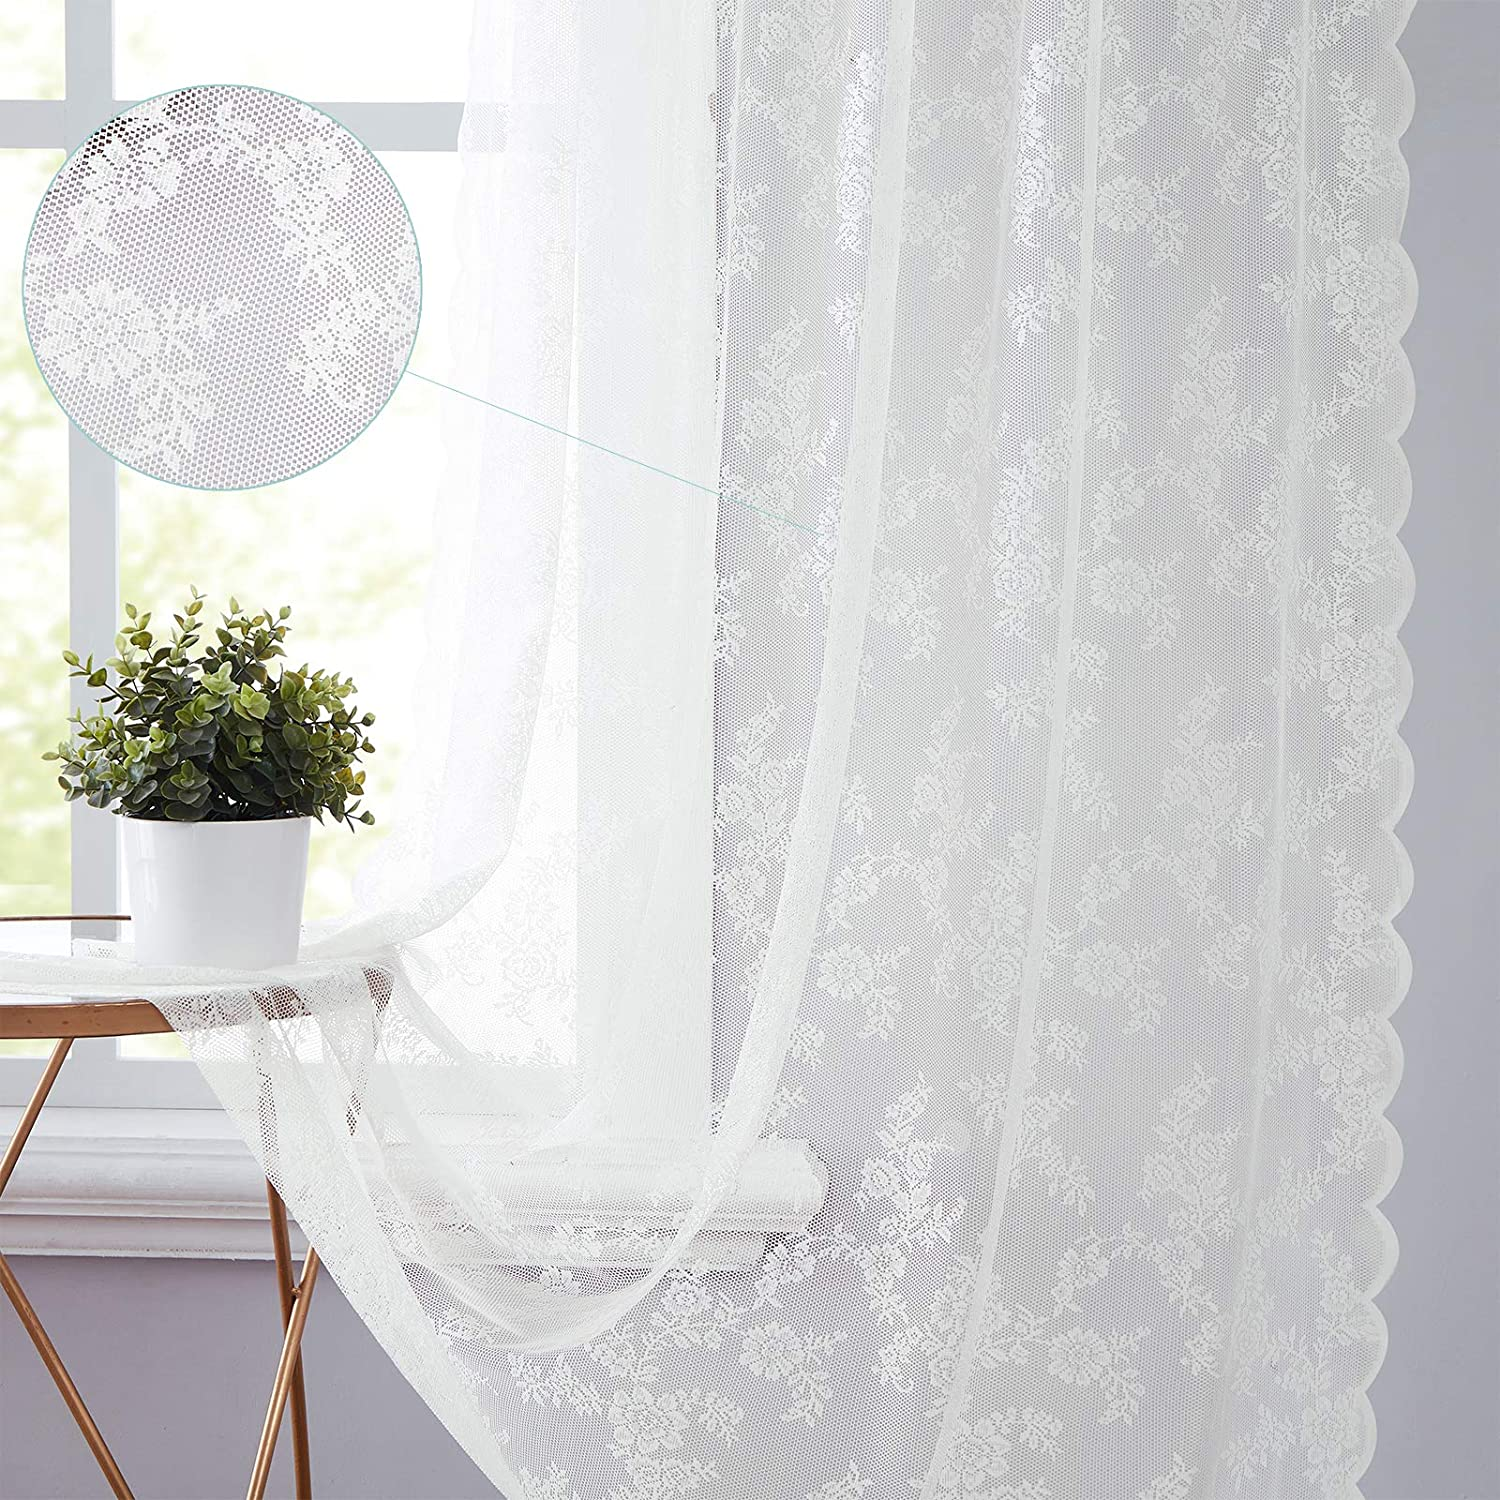 Rose Lace Sheer Curtains Free Shipping New White 63 Vintage Length inch Floral Tulsa Mall Emb